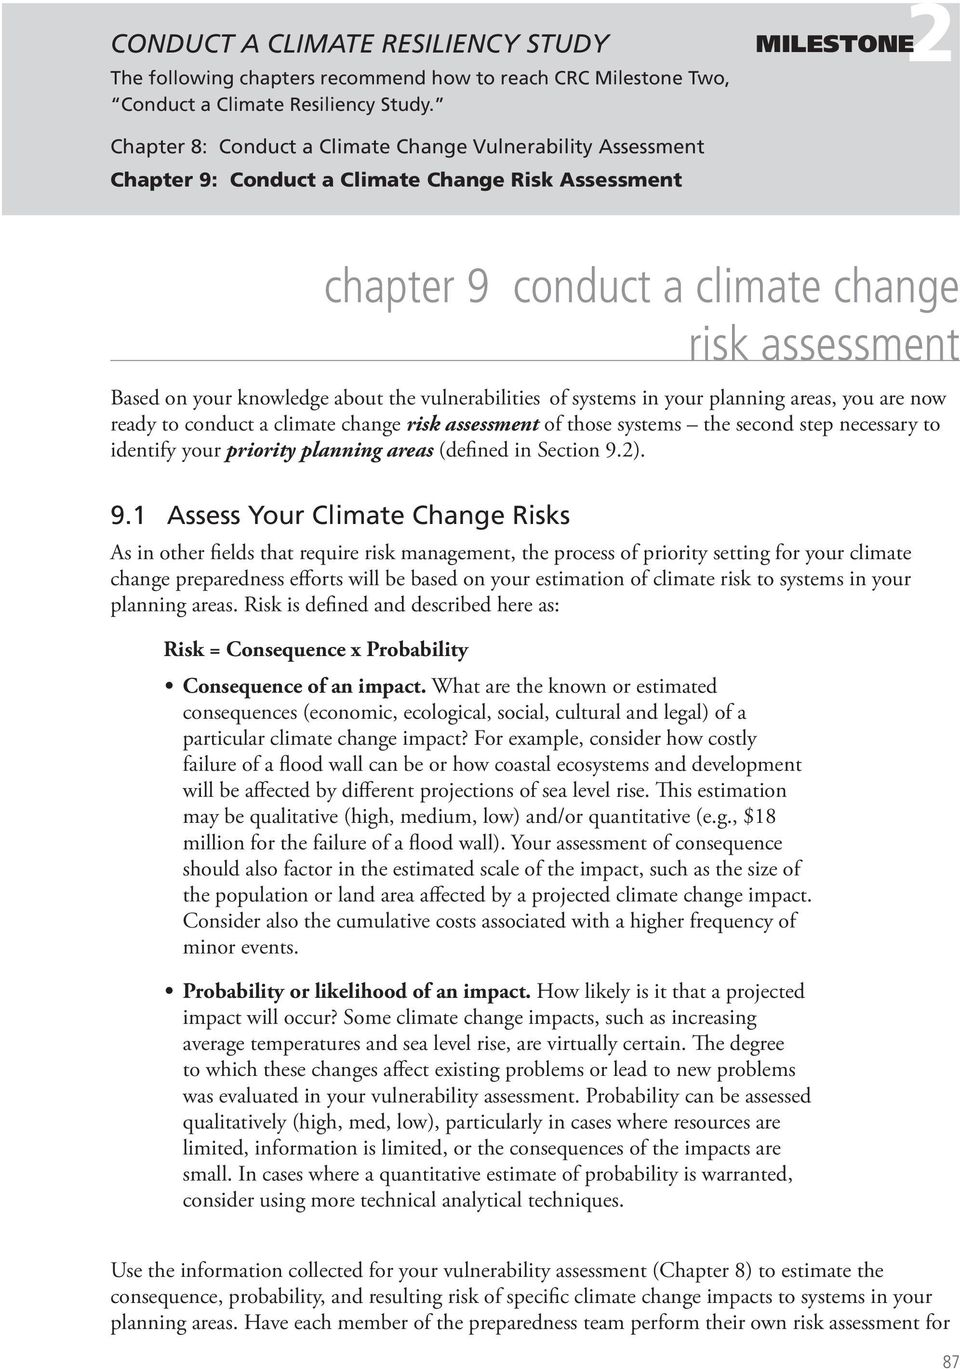 about the vulnerabilities of systems in your, you are now ready to conduct a climate change risk assessment of those systems the second step necessary to identify your priority (defined in Section 9.